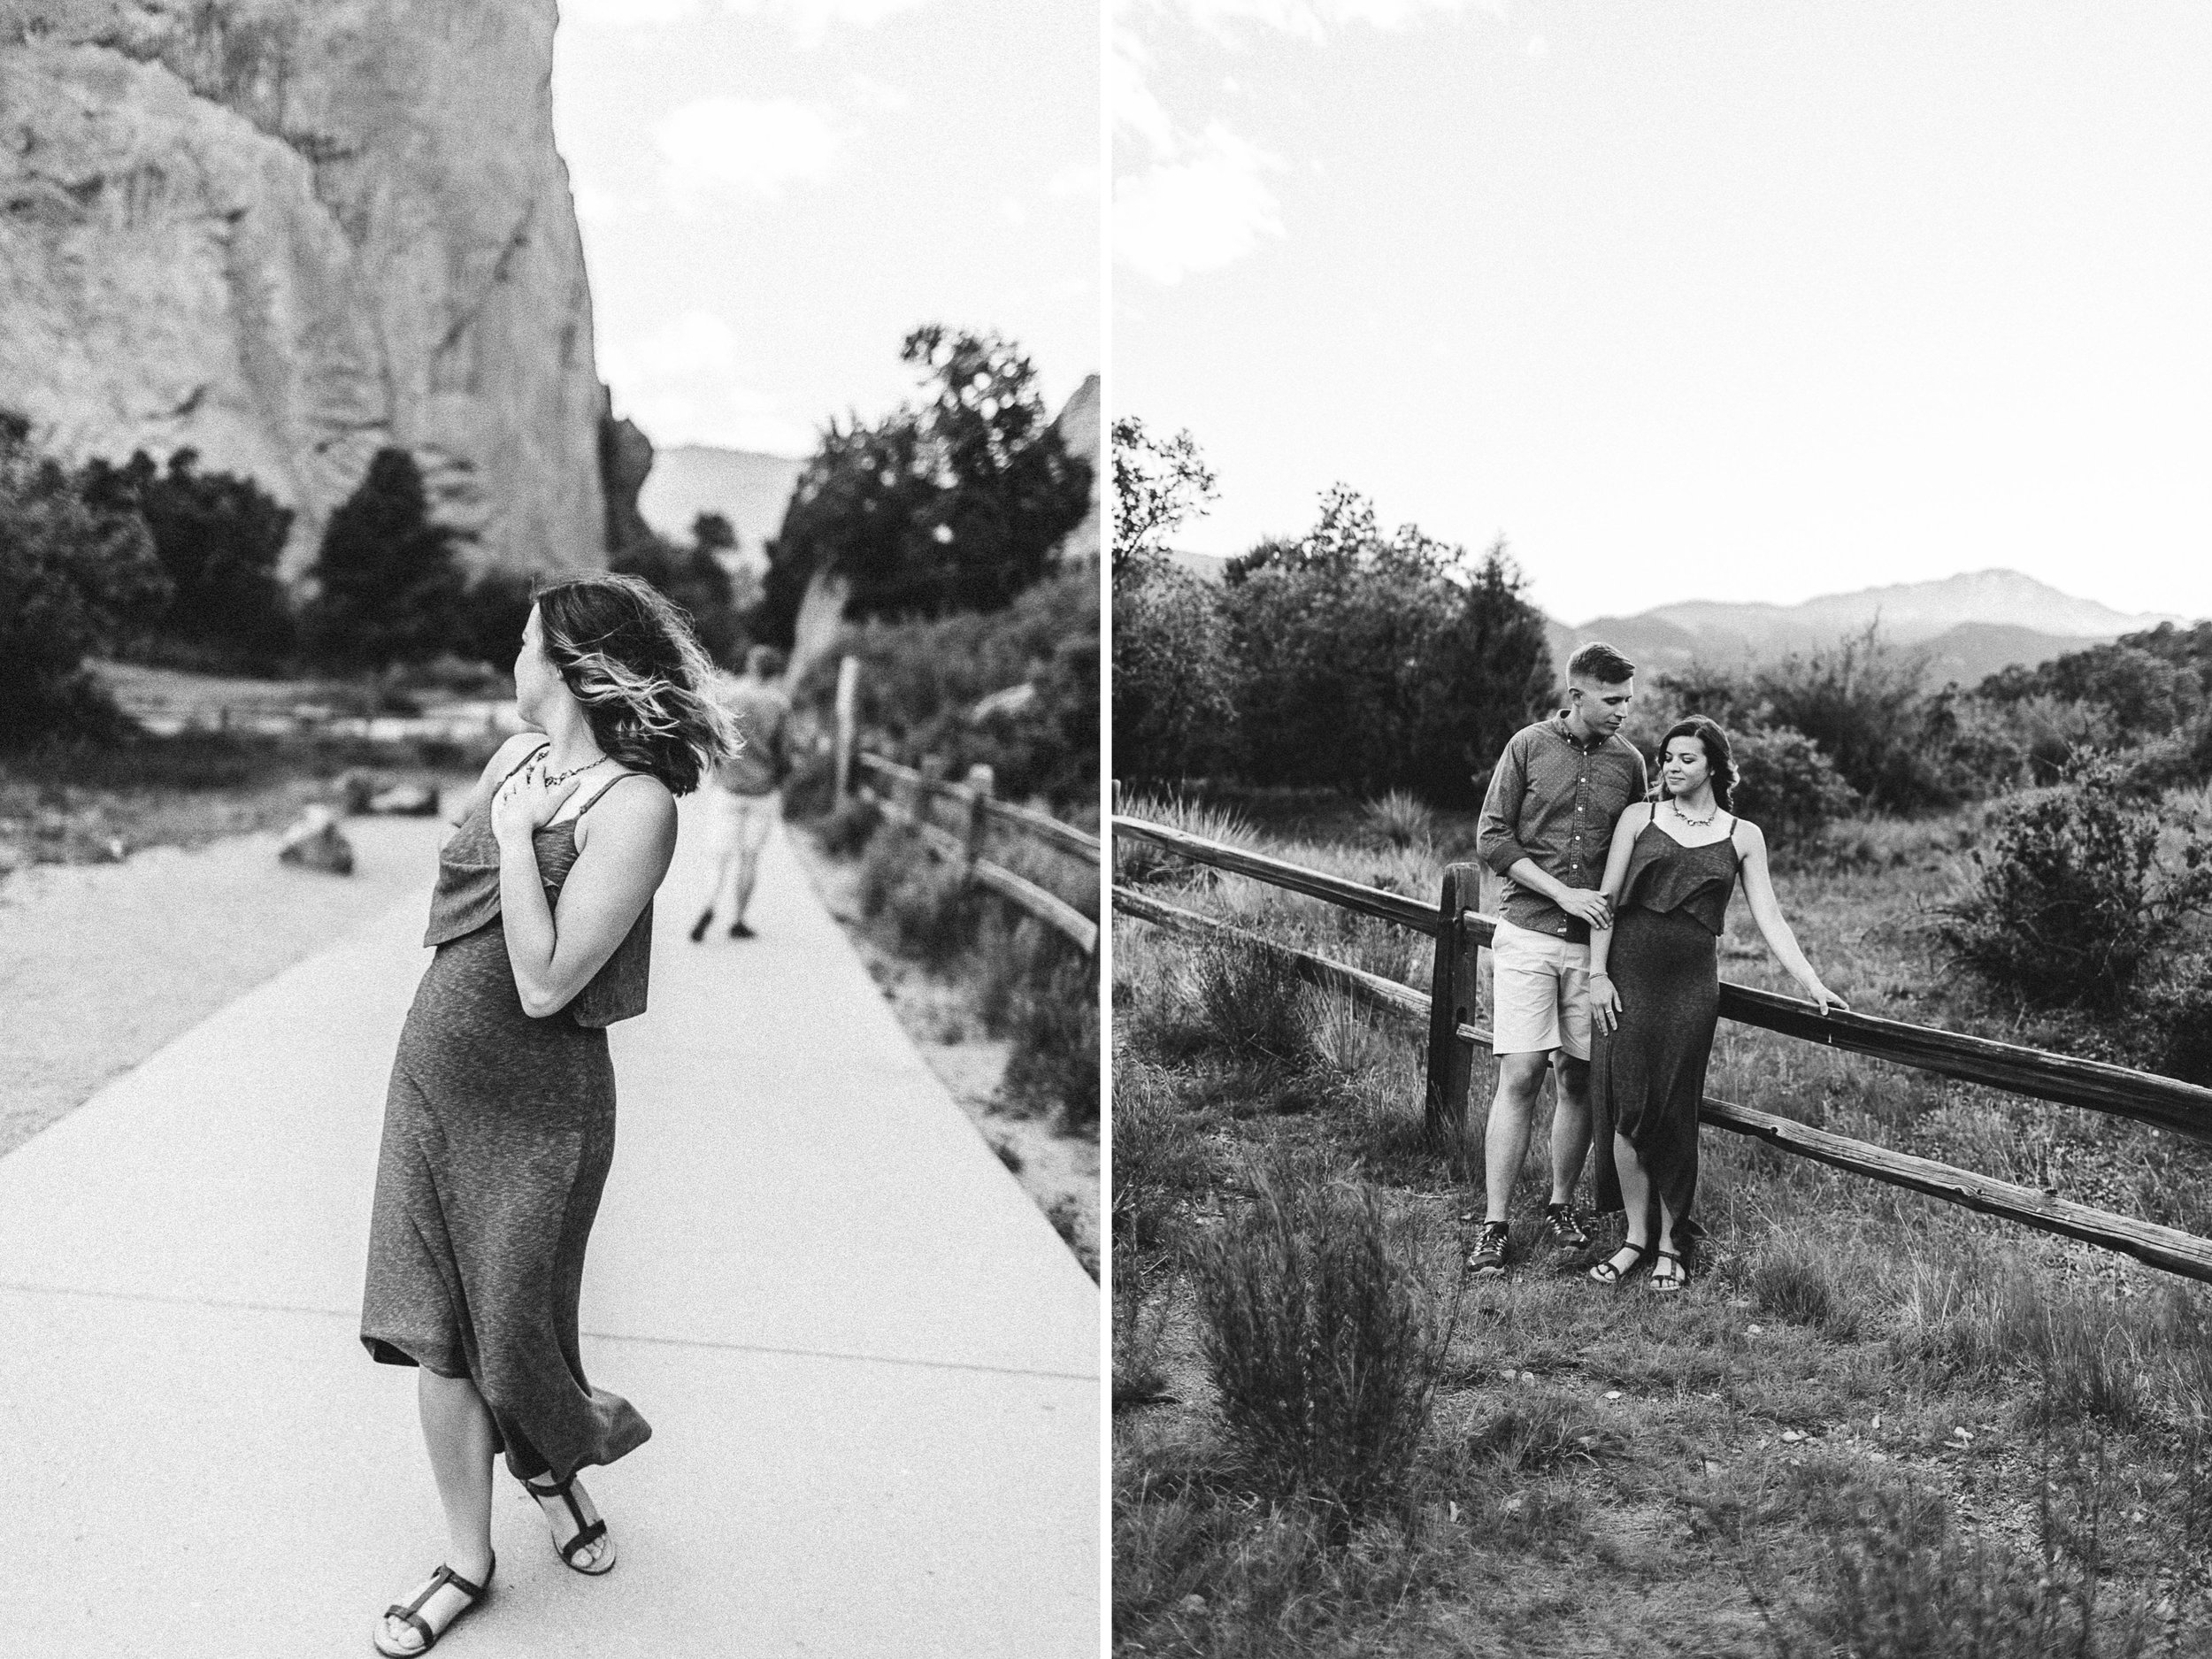 Colorado Springs Engagement Wedding Adventure Photographer - Erin and Jim 21.jpg